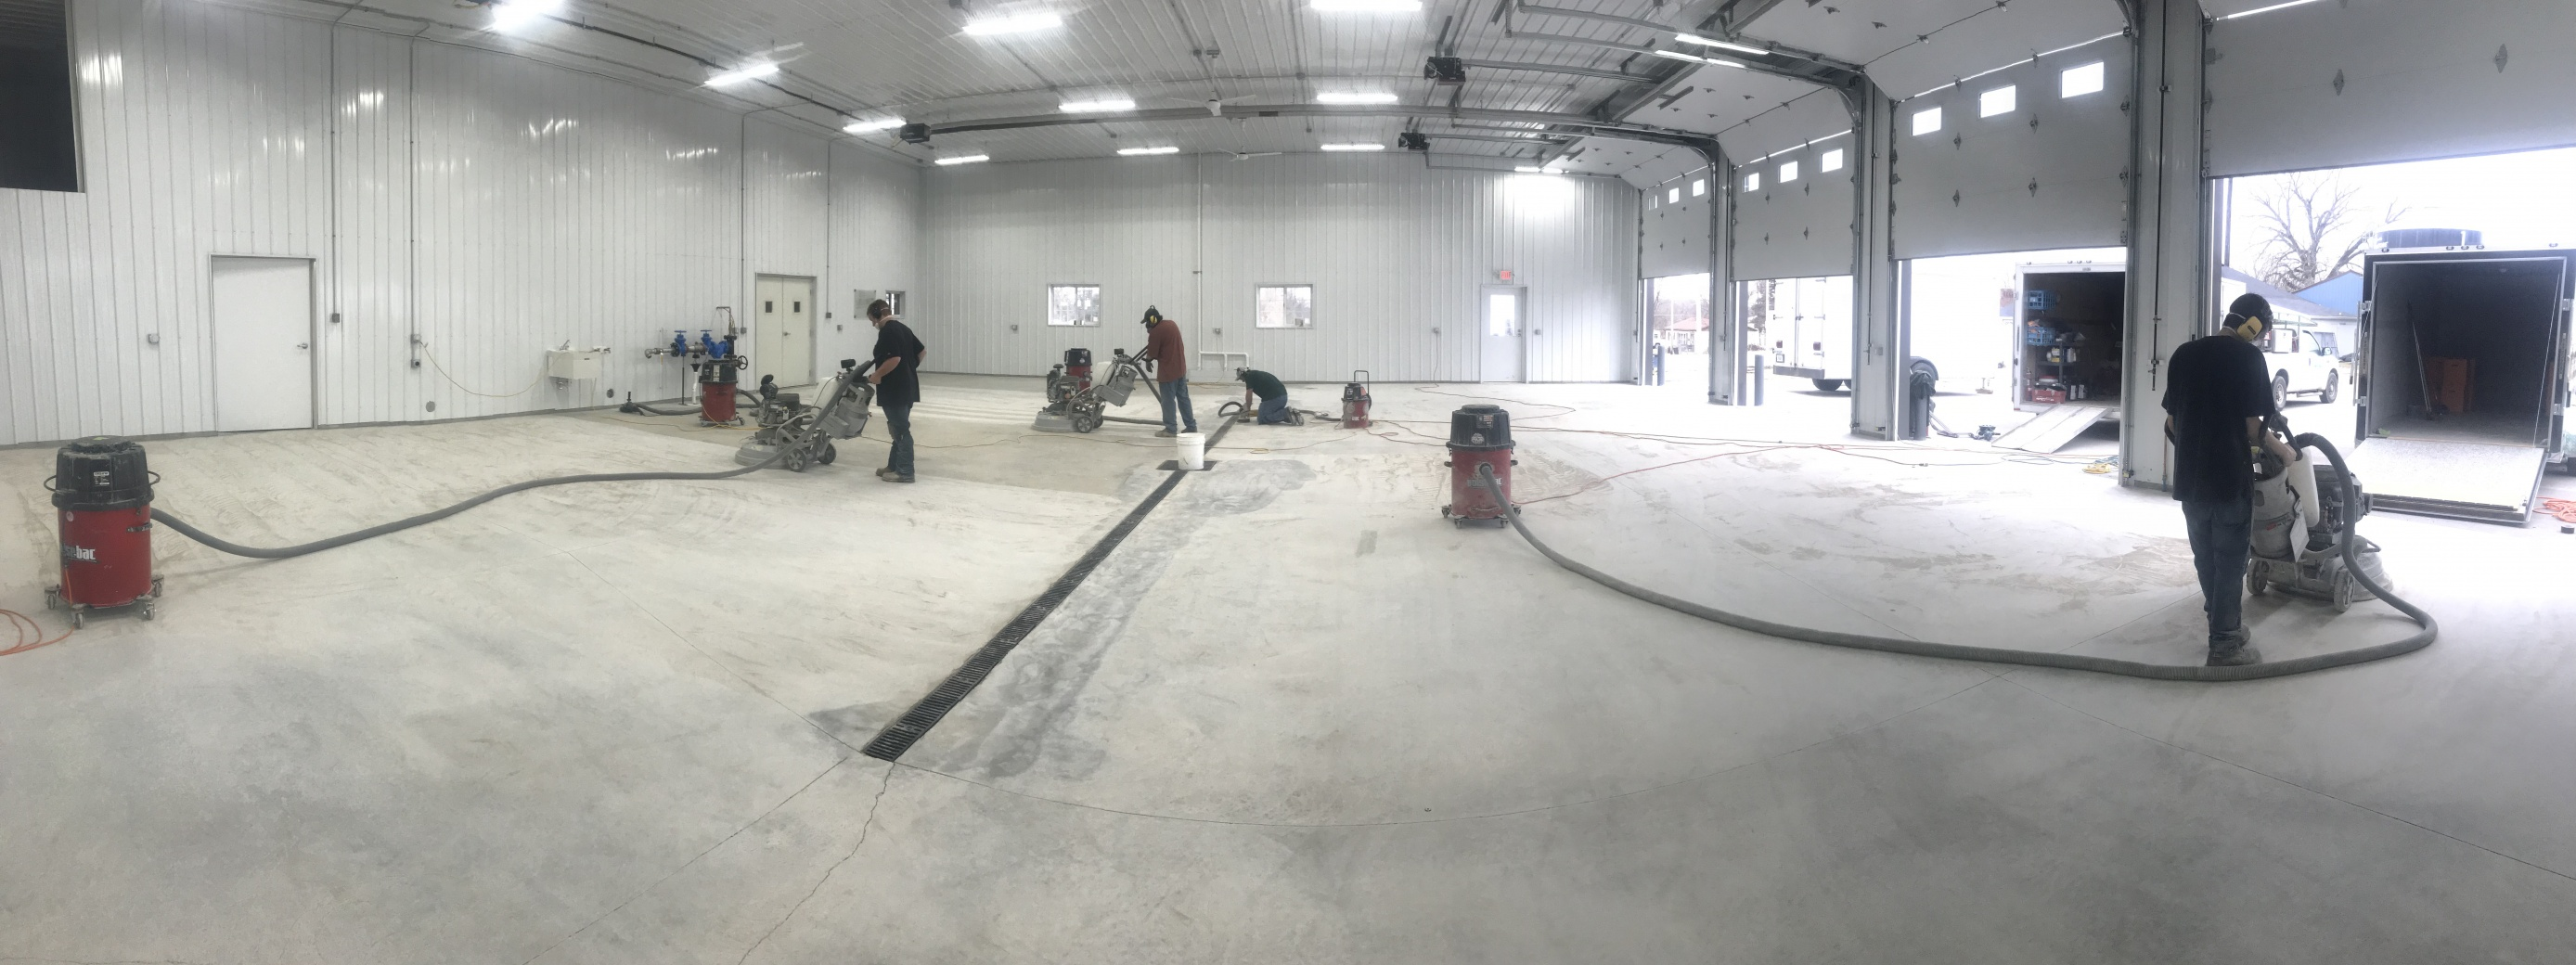 Concrete workers grinding concrete floor in large shop